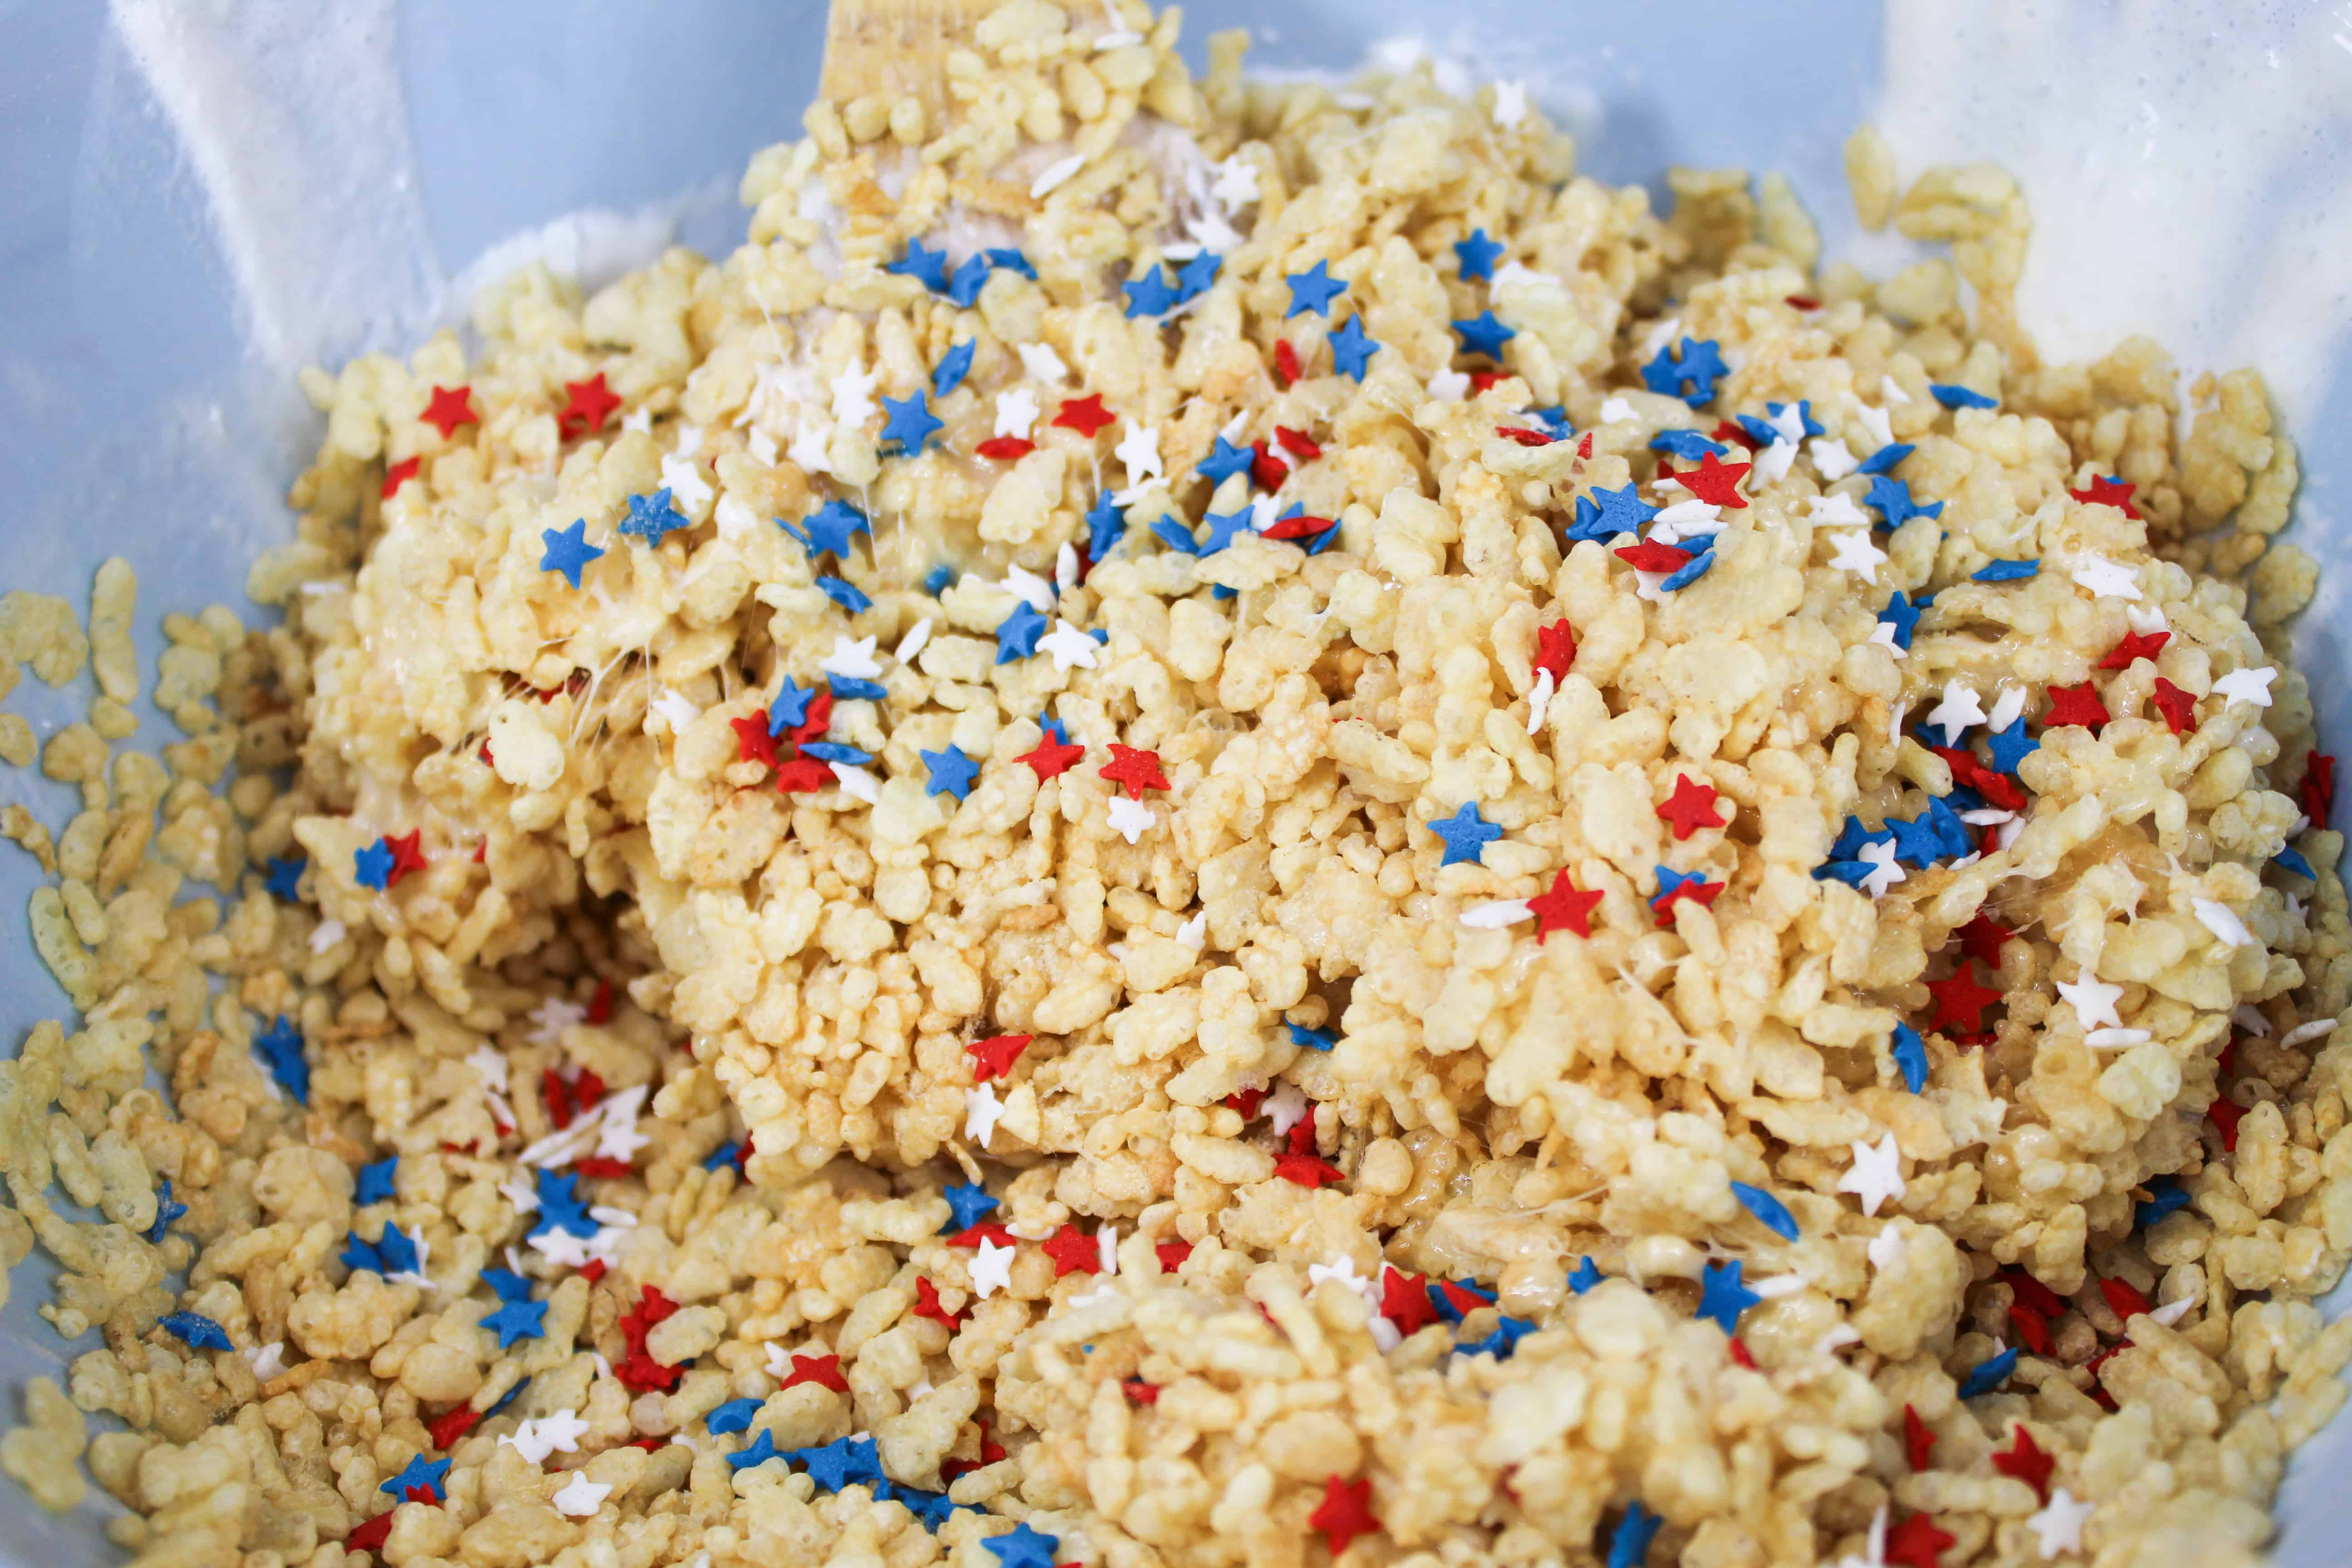 Drop in red and white sanding sugar and red and white star sprinkles to make yummy patriotic rice krispie treats